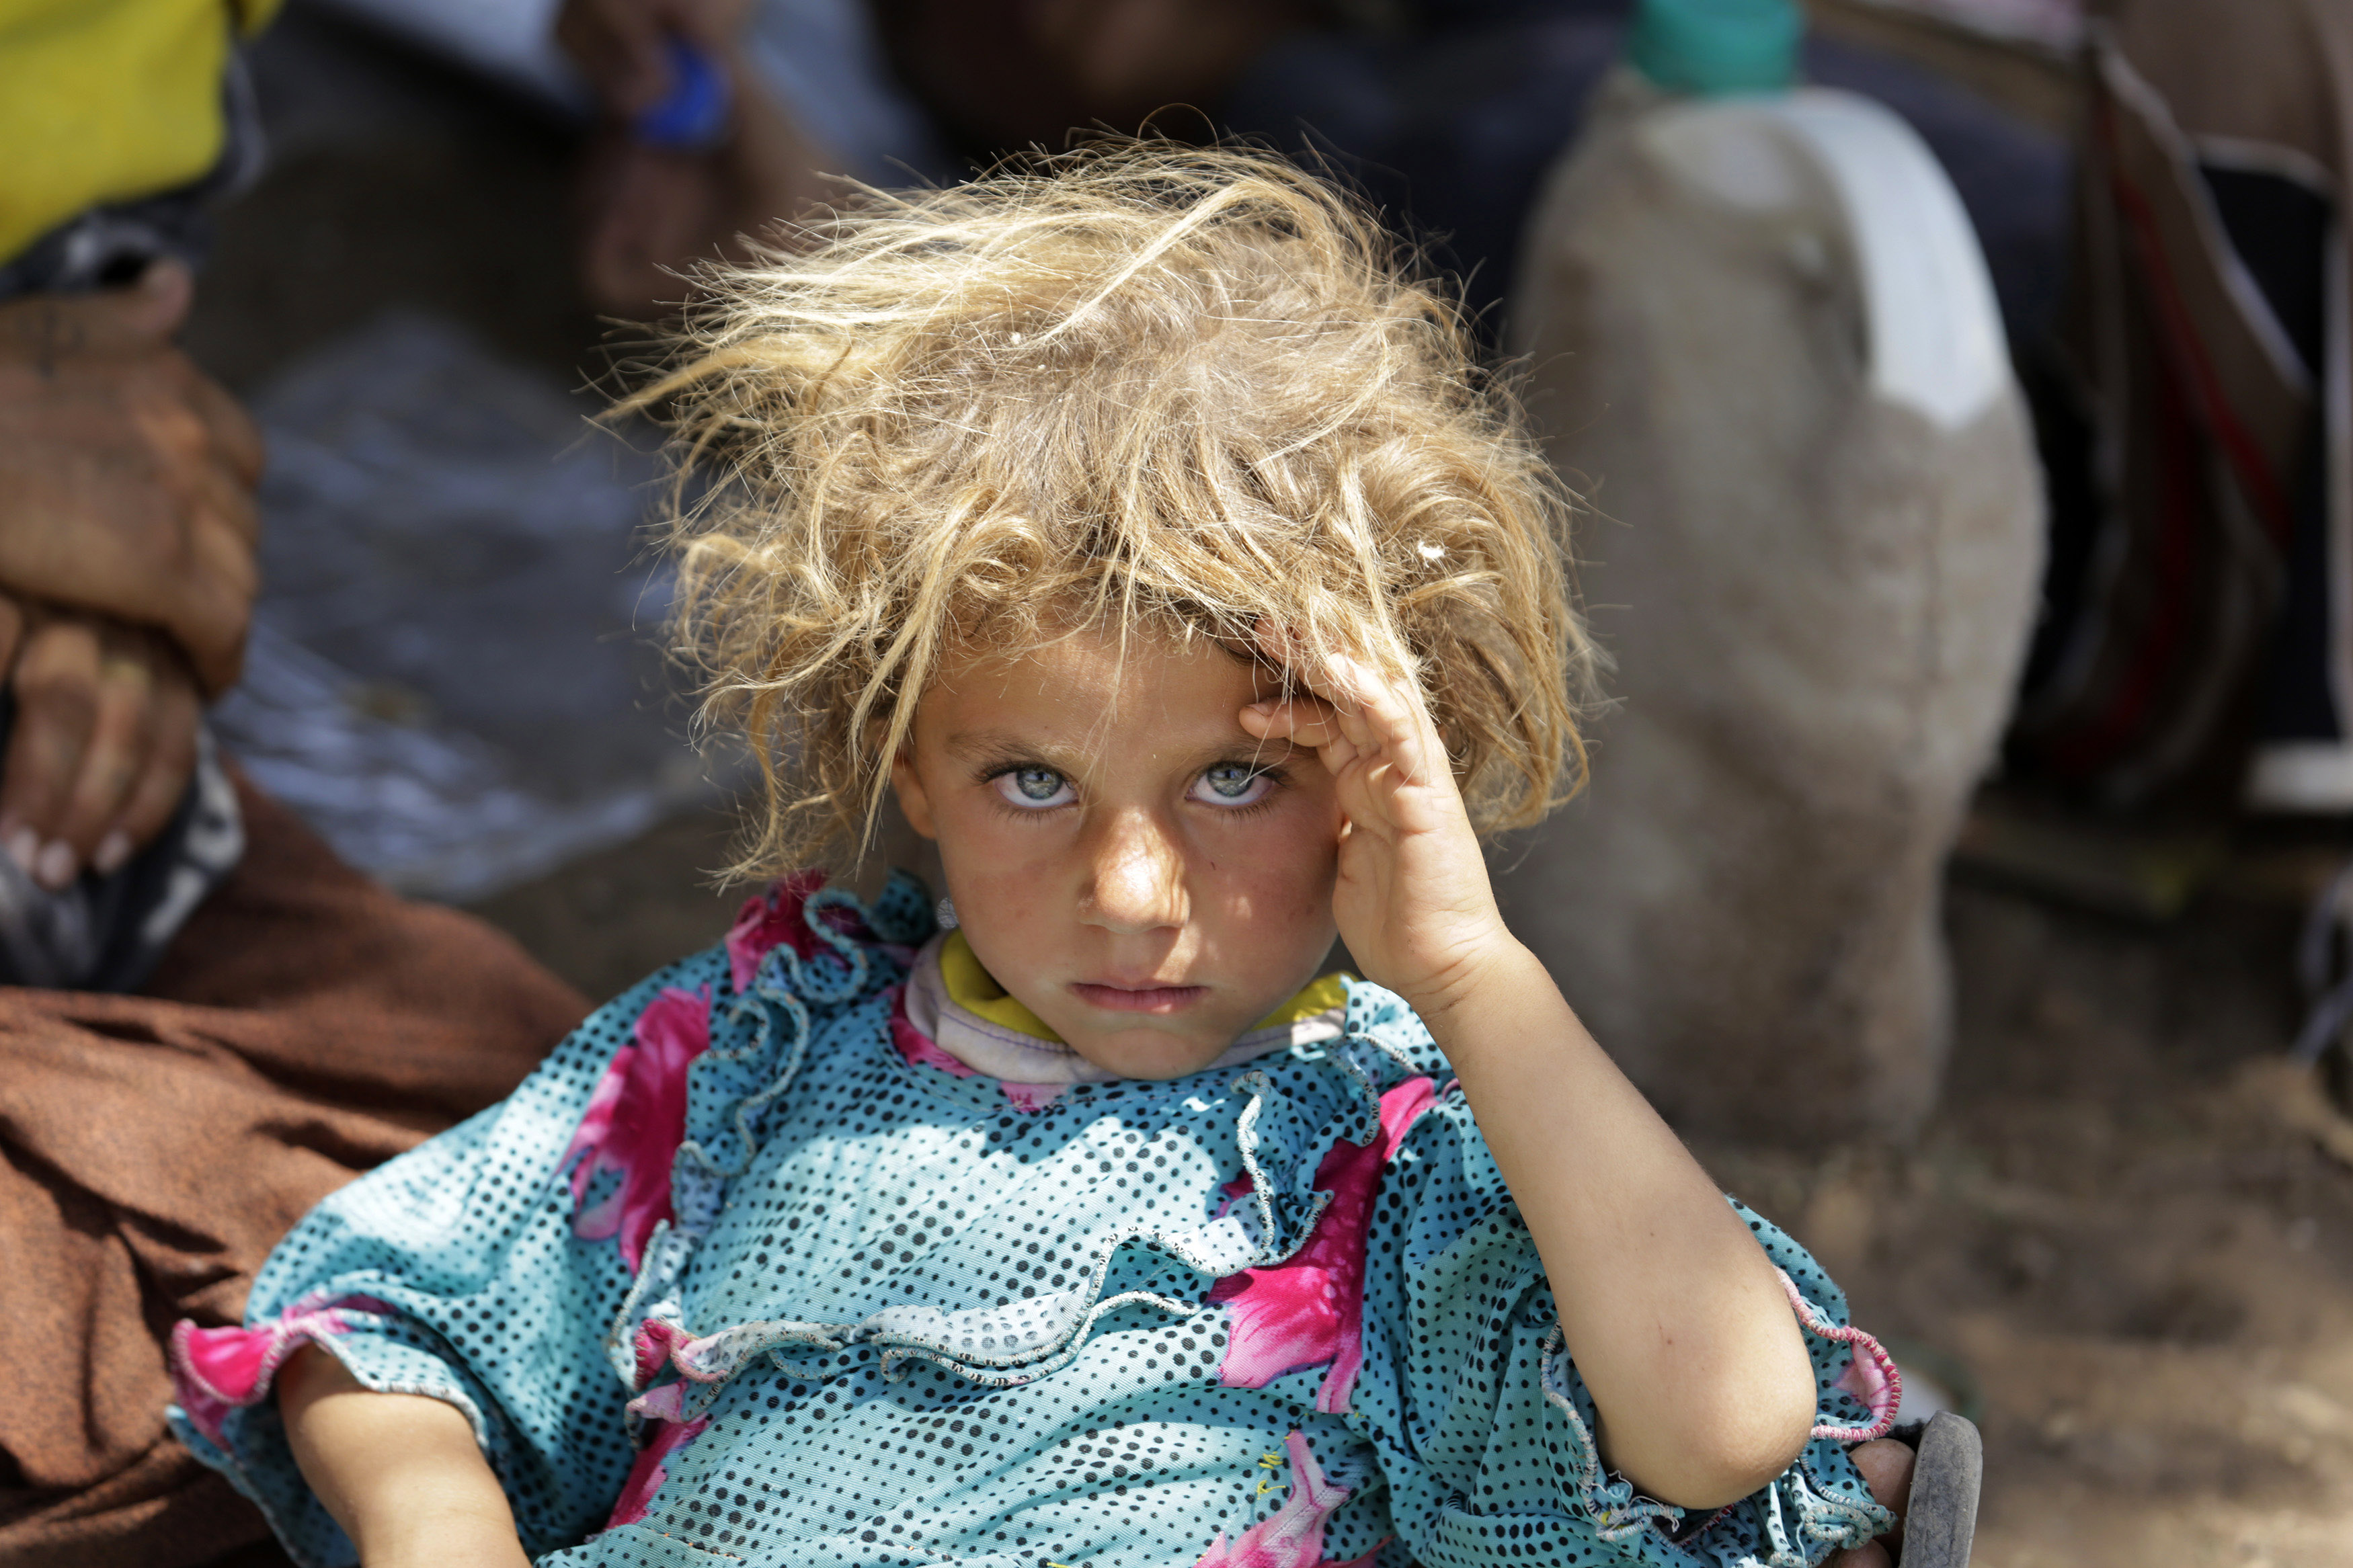 A girl from the minority Yazidi sect, fleeing the violence in the Iraqi town of Sinjar, rests at the Iraqi-Syrian border crossing in Fishkhabour, Dohuk province on August 13, 2014.